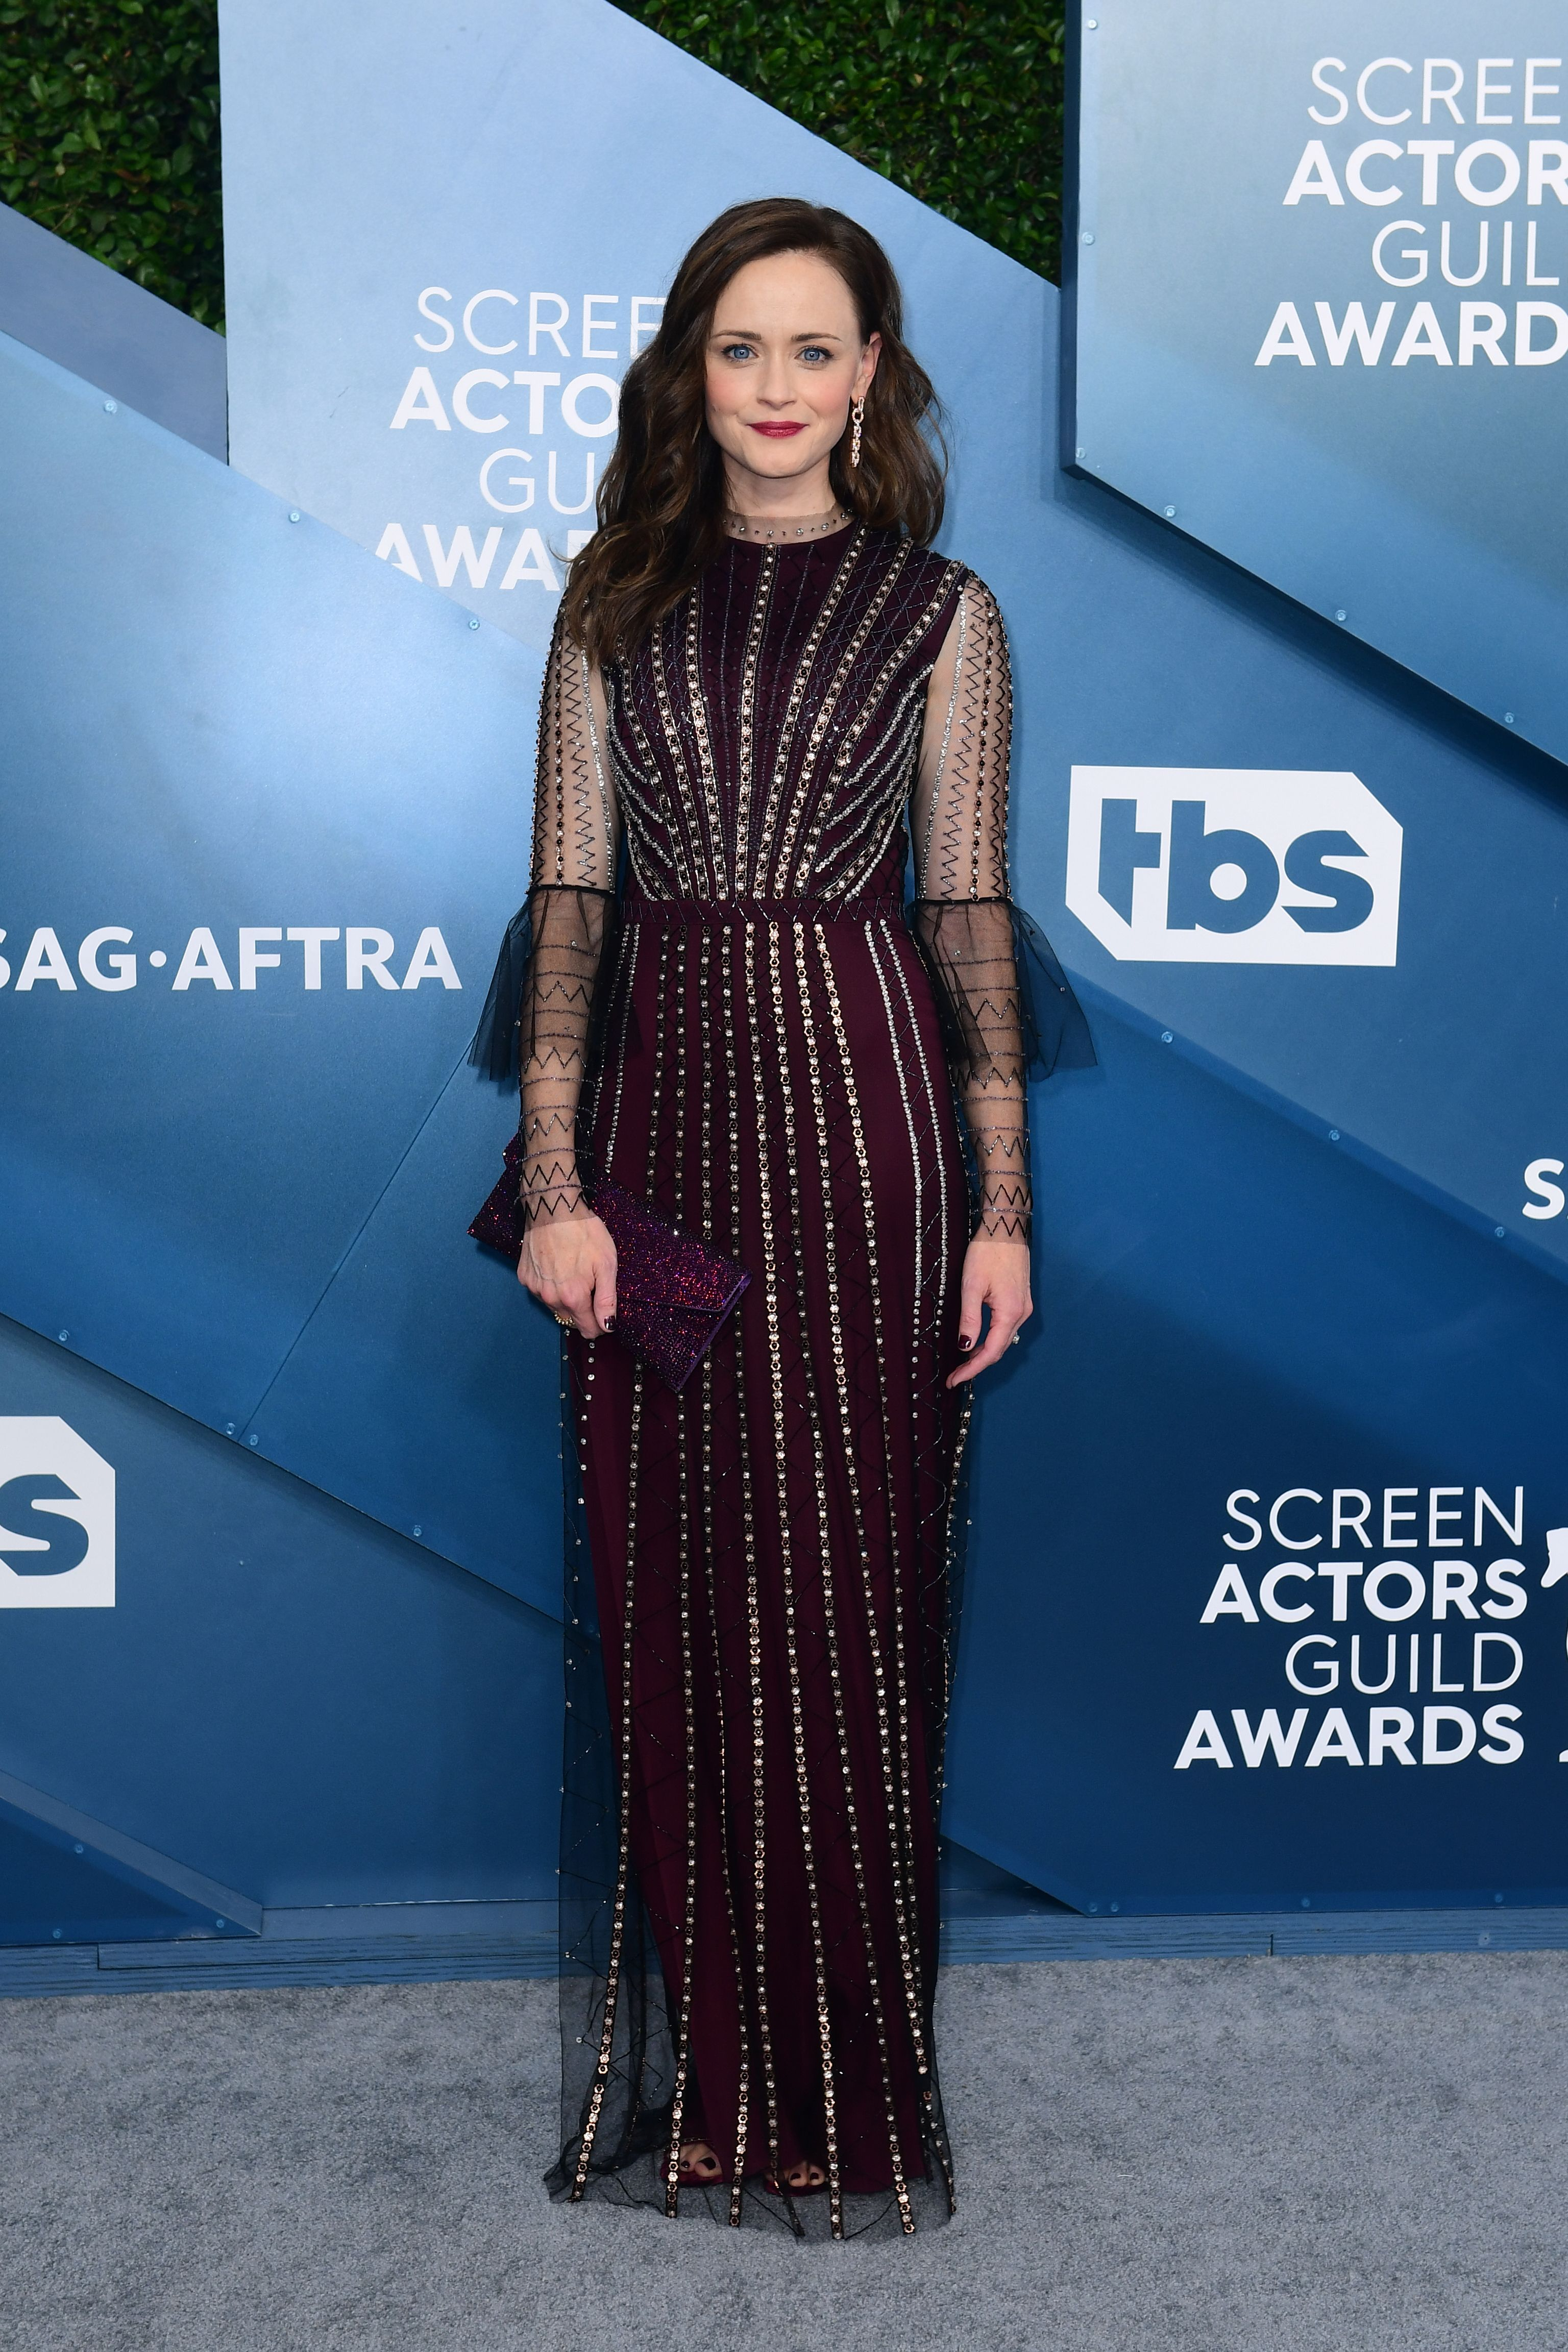 US actress Alexis Bledel arrives for the 26th Annual Screen Actors Guild Awards at the Shrine Auditorium in Los Angeles on January 19, 2020. (Photo by FREDERIC J. BROWN / AFP) (Photo by FREDERIC J. BROWN/AFP via Getty Images)